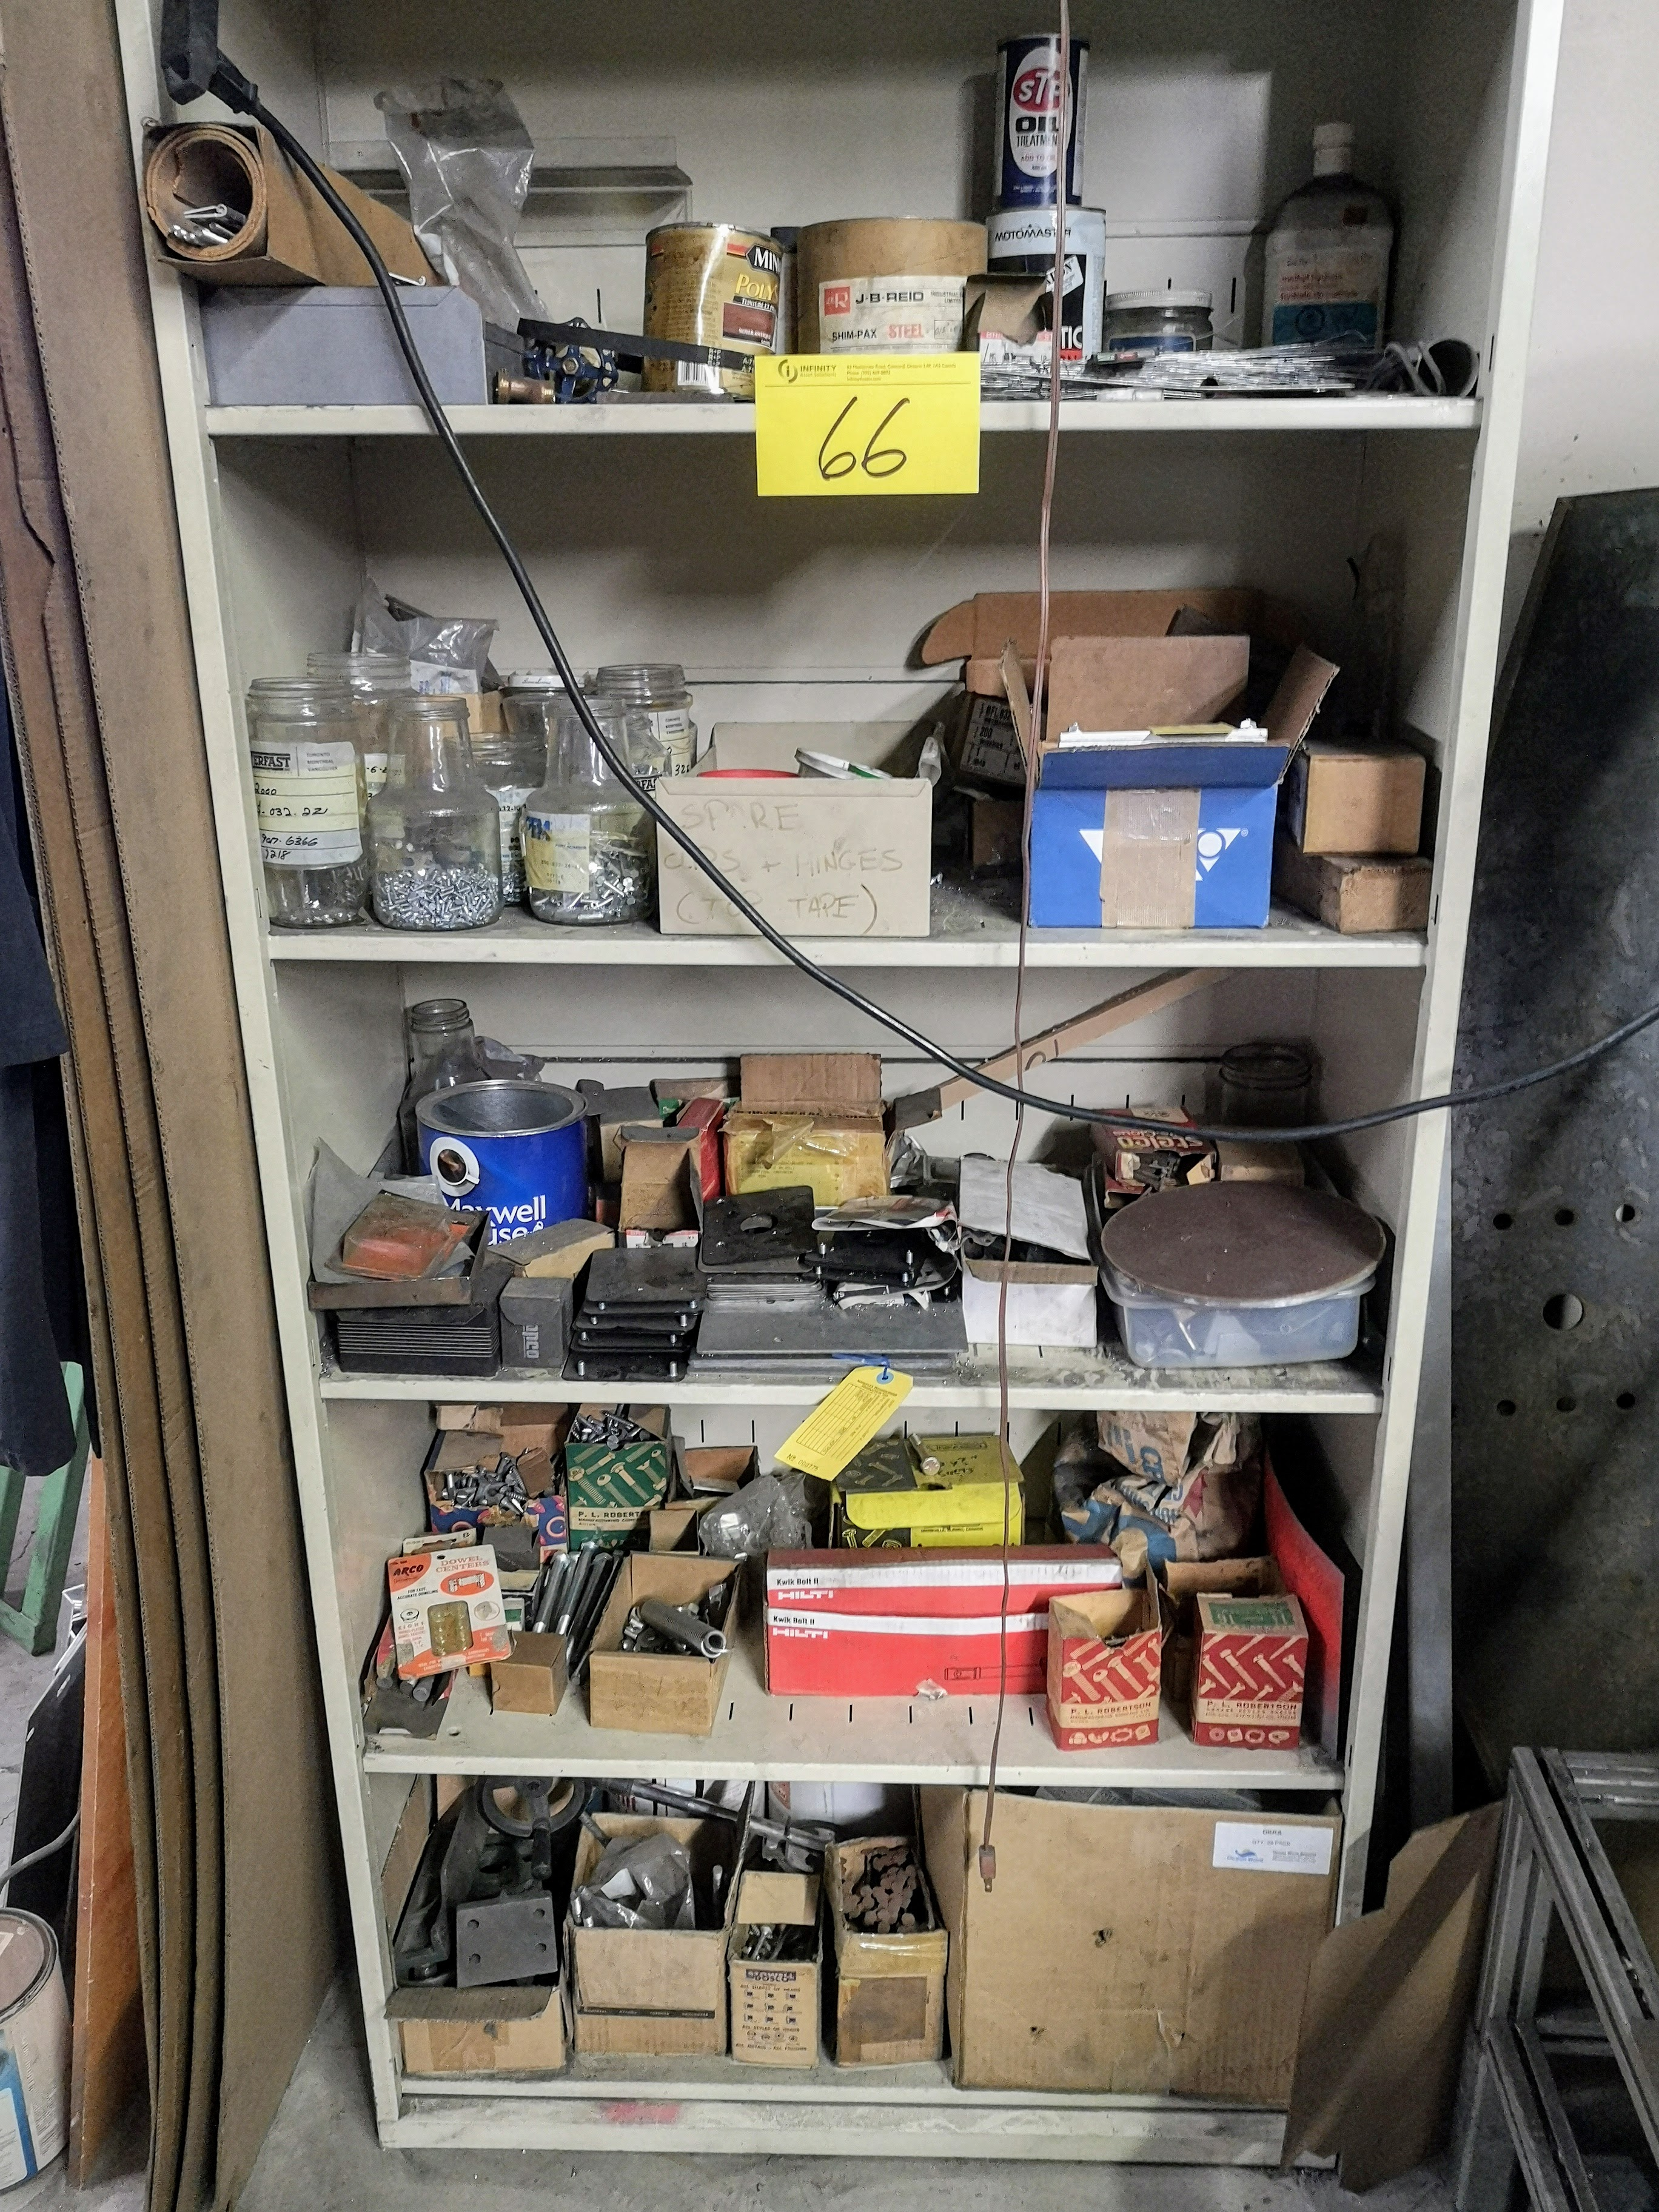 LOT CONTENTS OF (2) CABINETS, GRINDING/CUTTING DISCS, NUTS, BOLTS, ETC. - Image 2 of 2